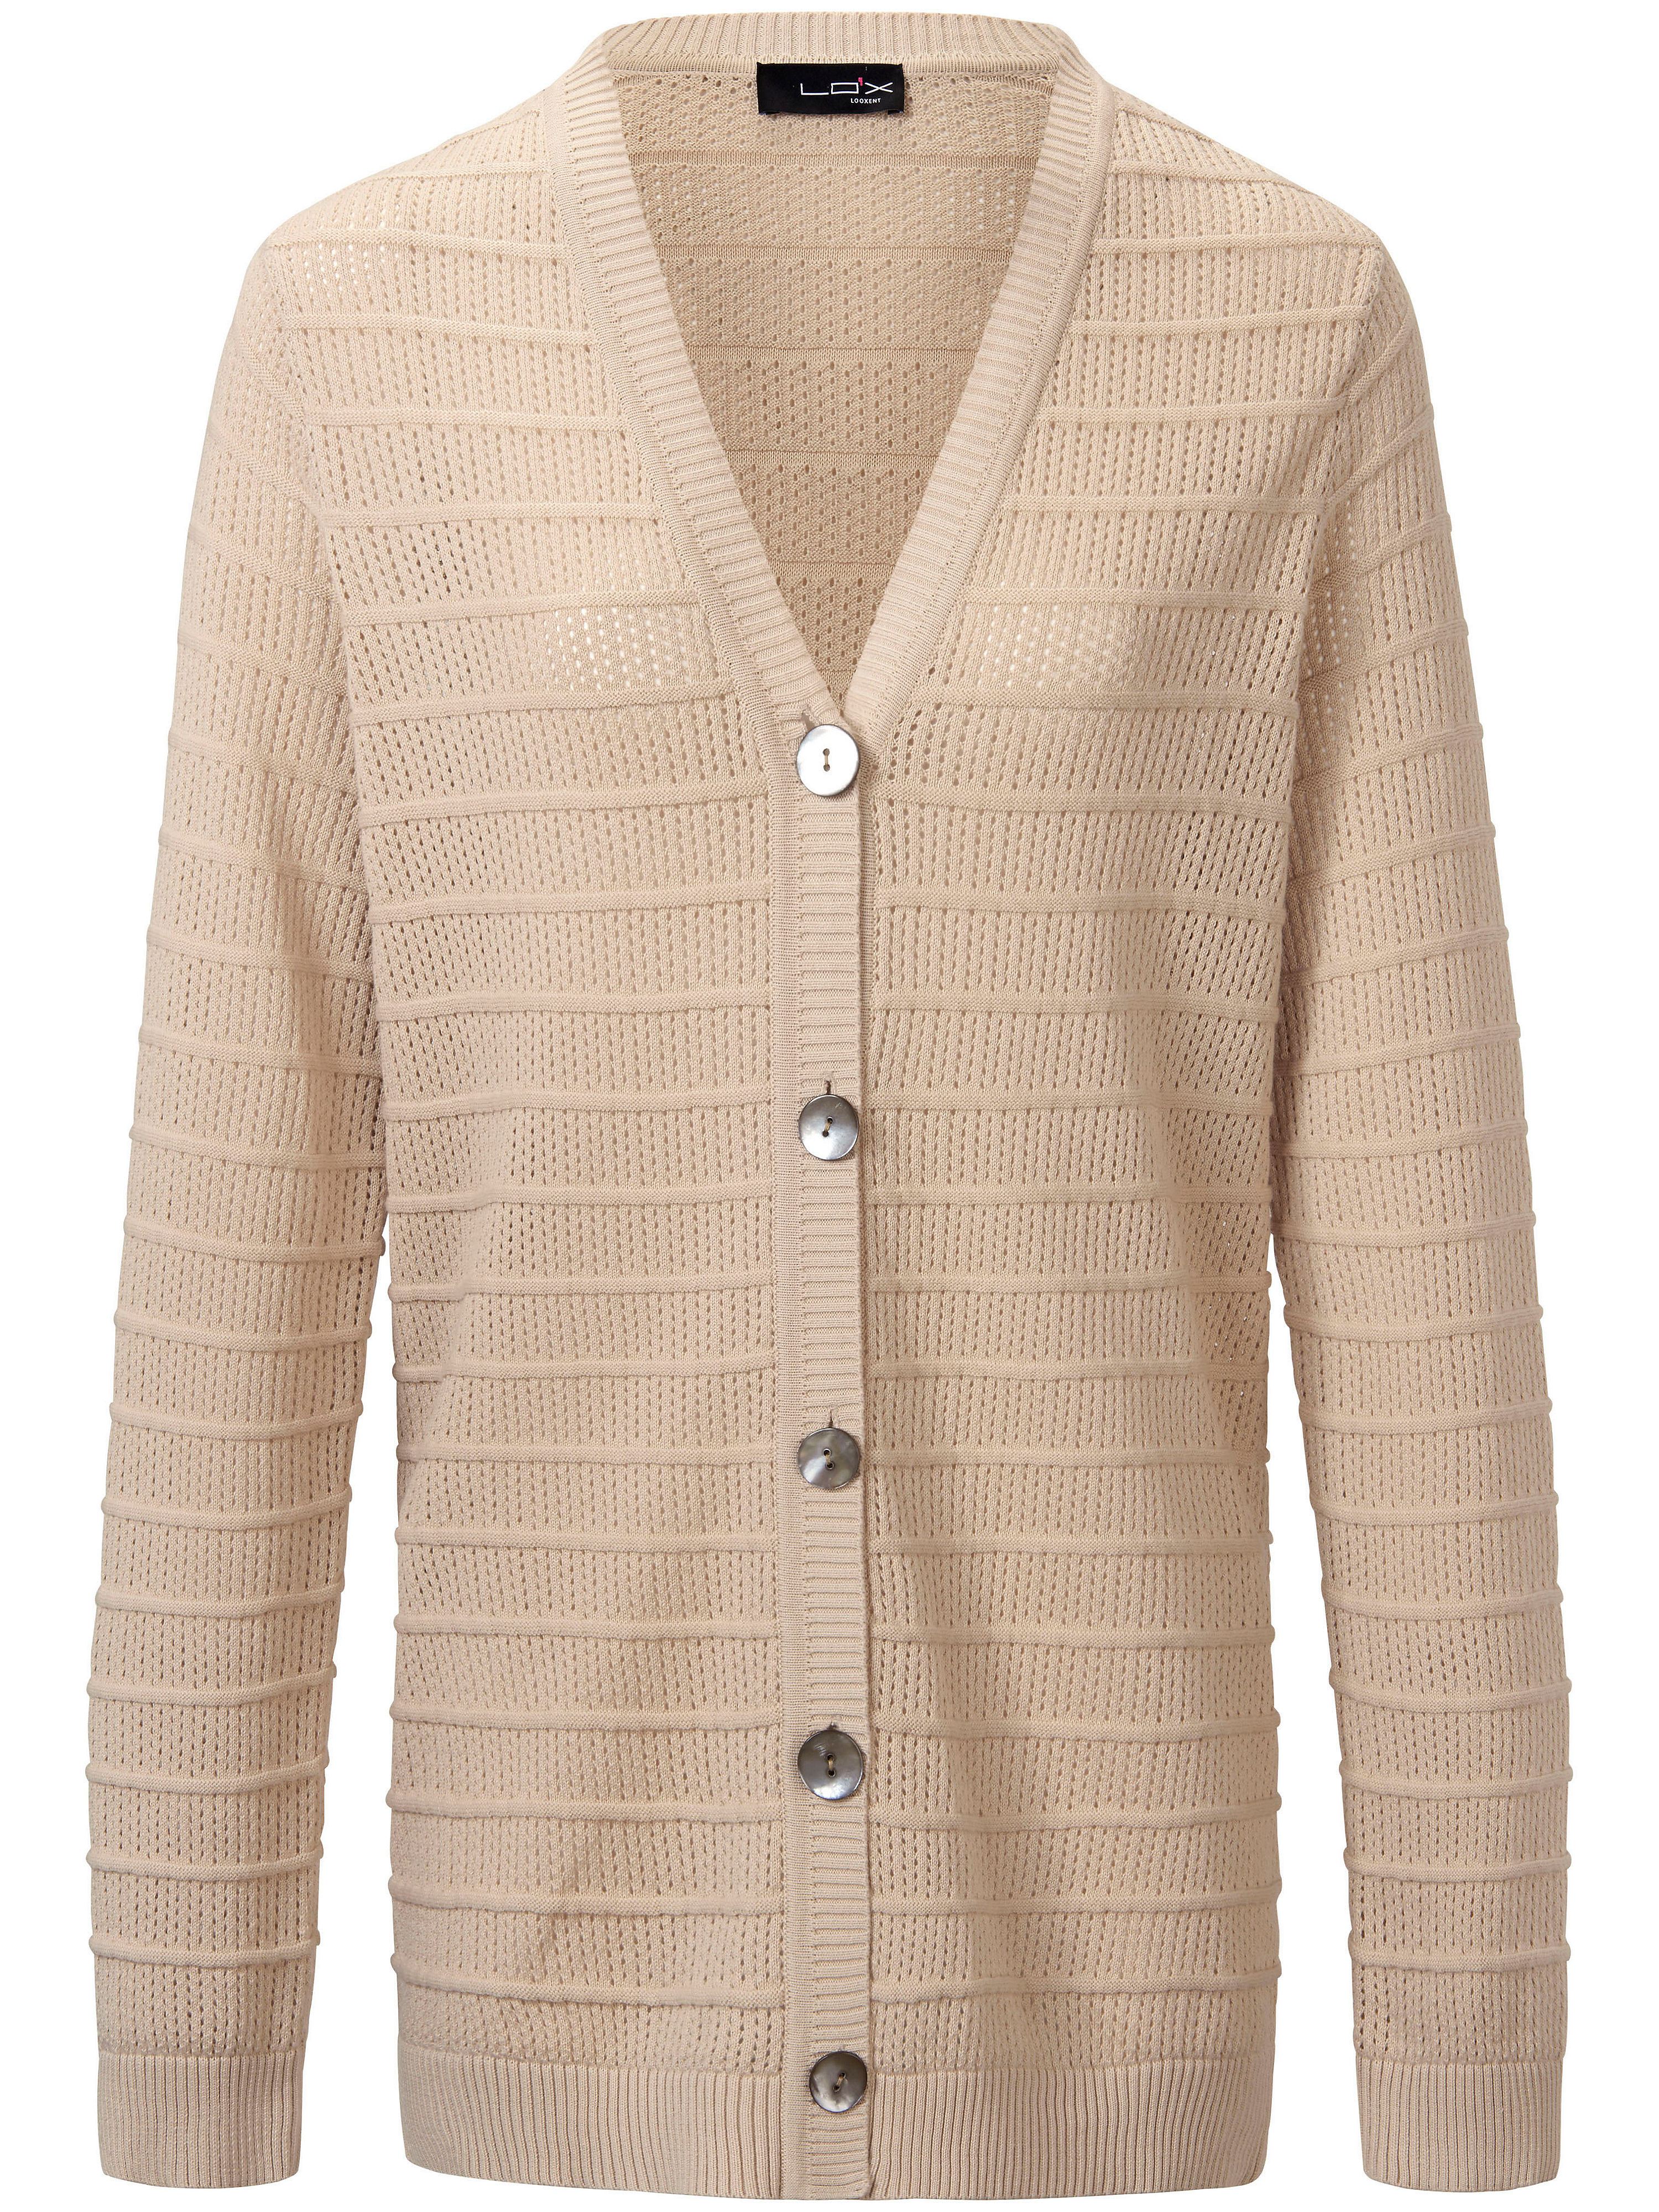 Image of   Cardigan Fra Looxent beige